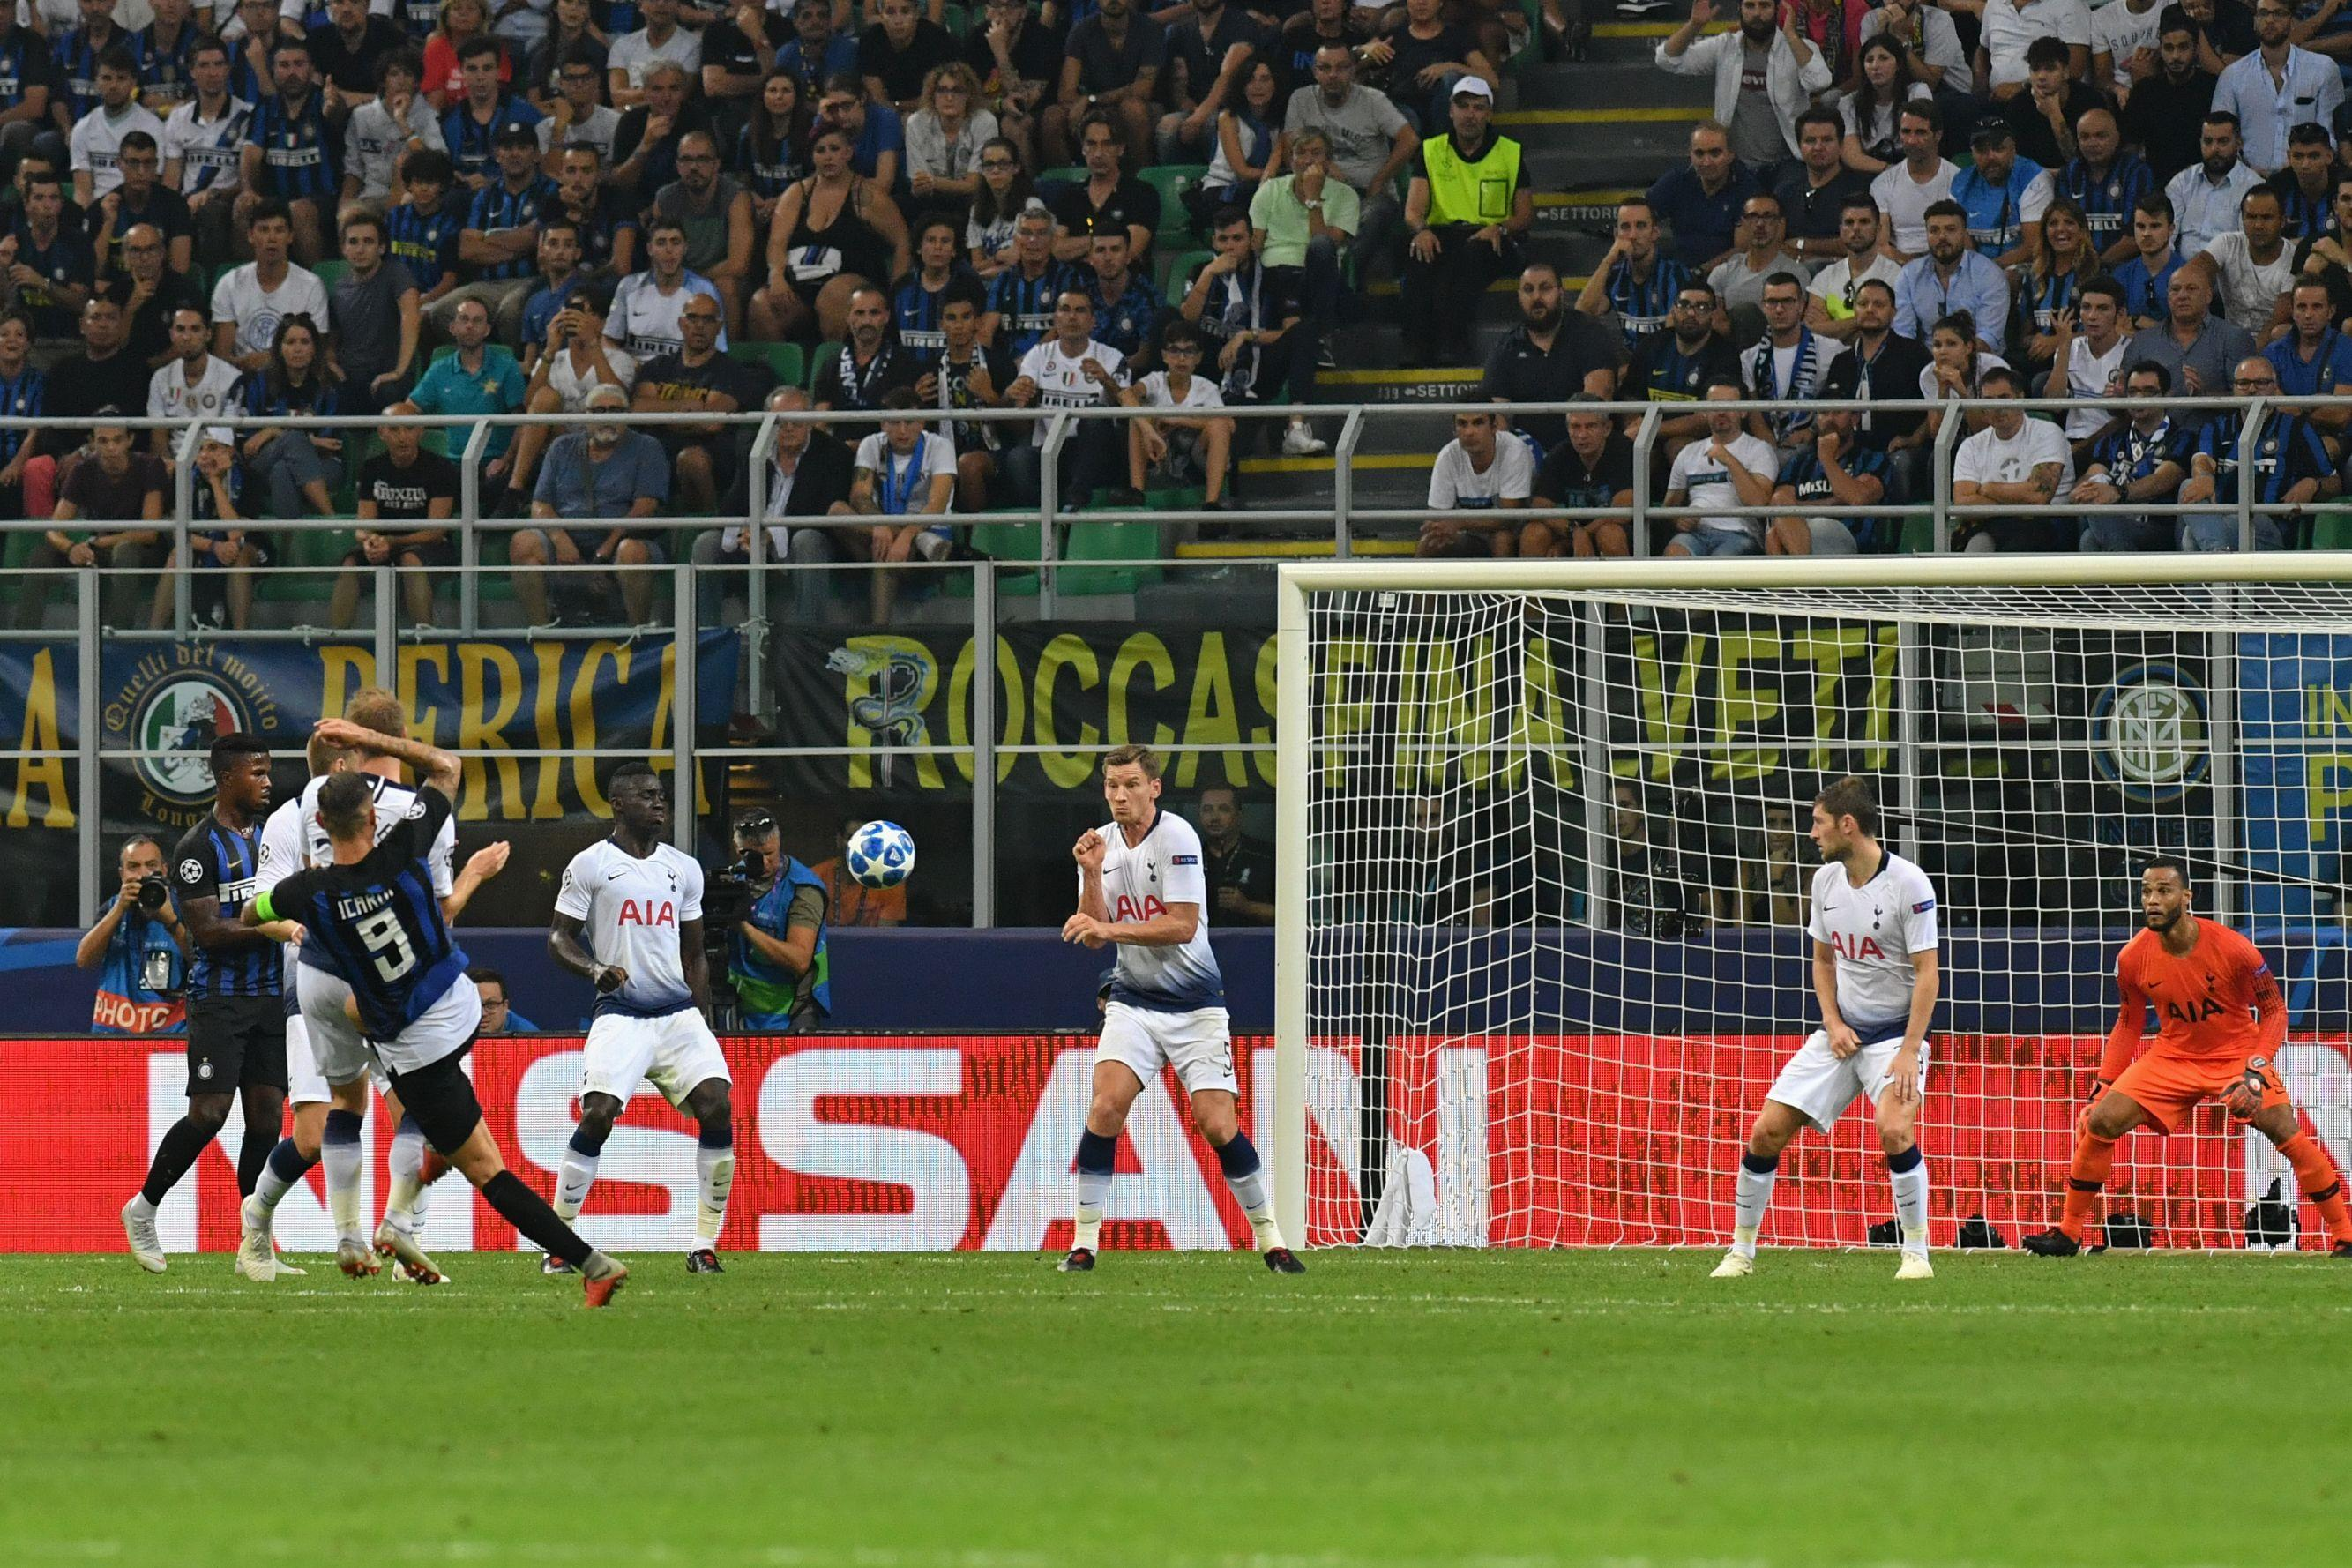 Mauro Icardi netted an incredible late volley to set-up Inter's win